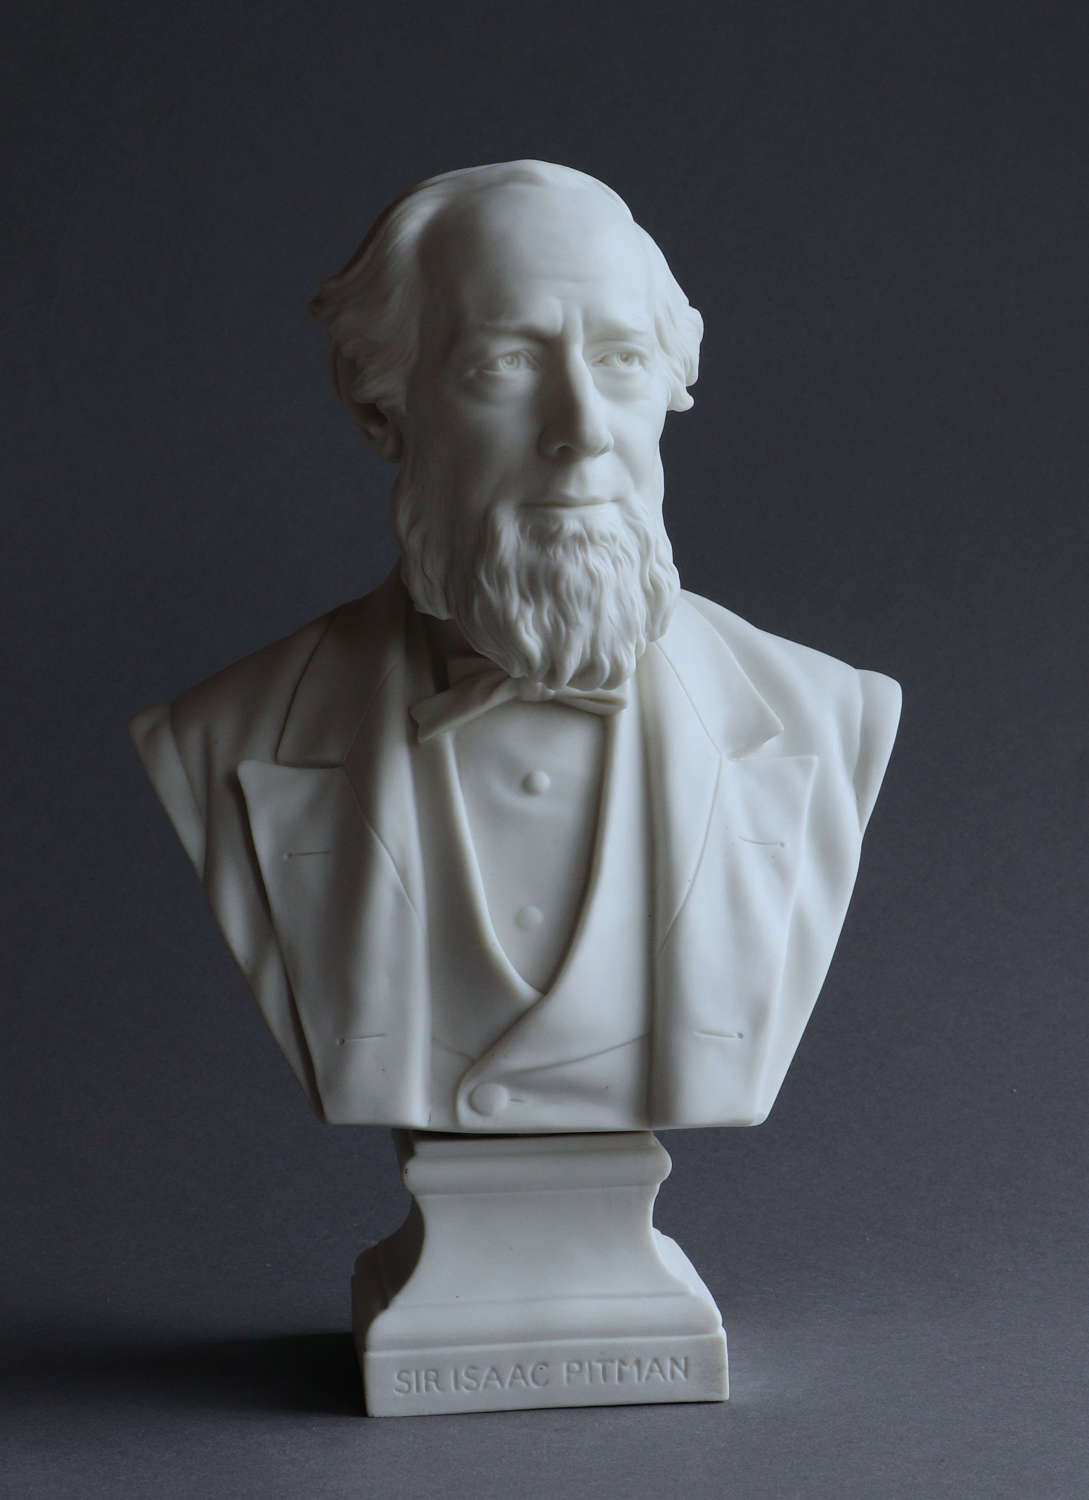 A Parian bust of Isaac Pitman by Robinson and Leadbeater